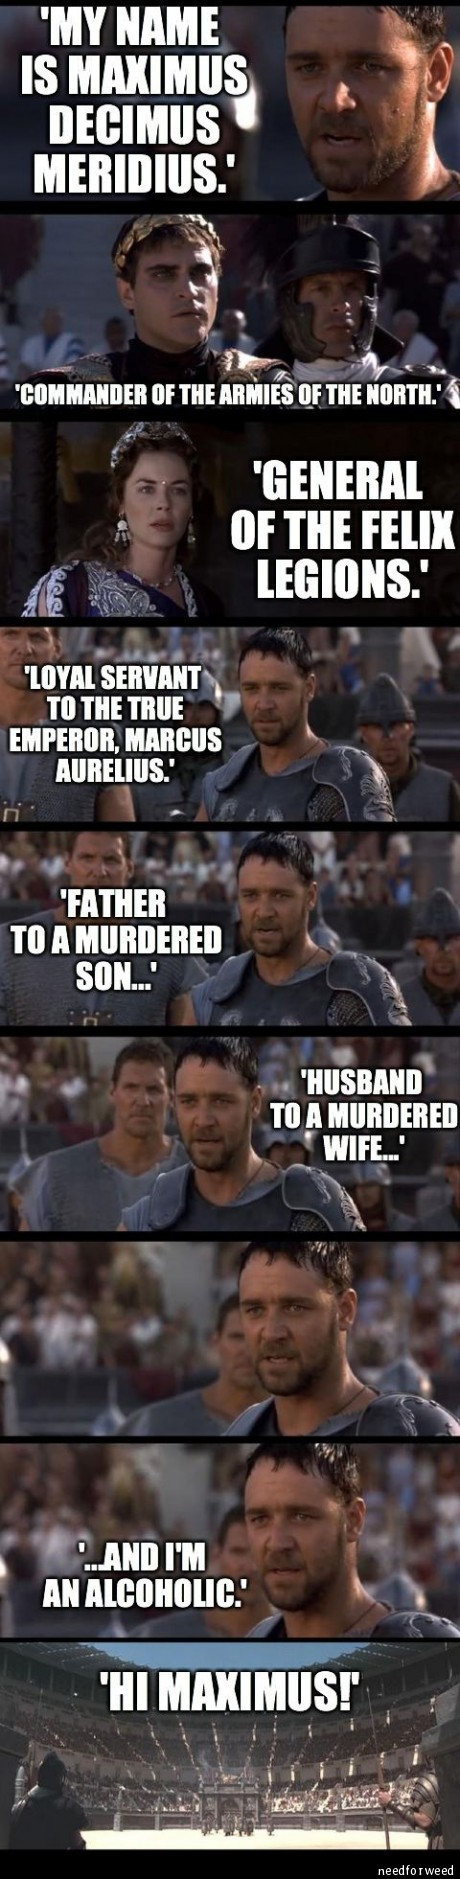 'It All Started When The Emperor Had My Family Murdered.